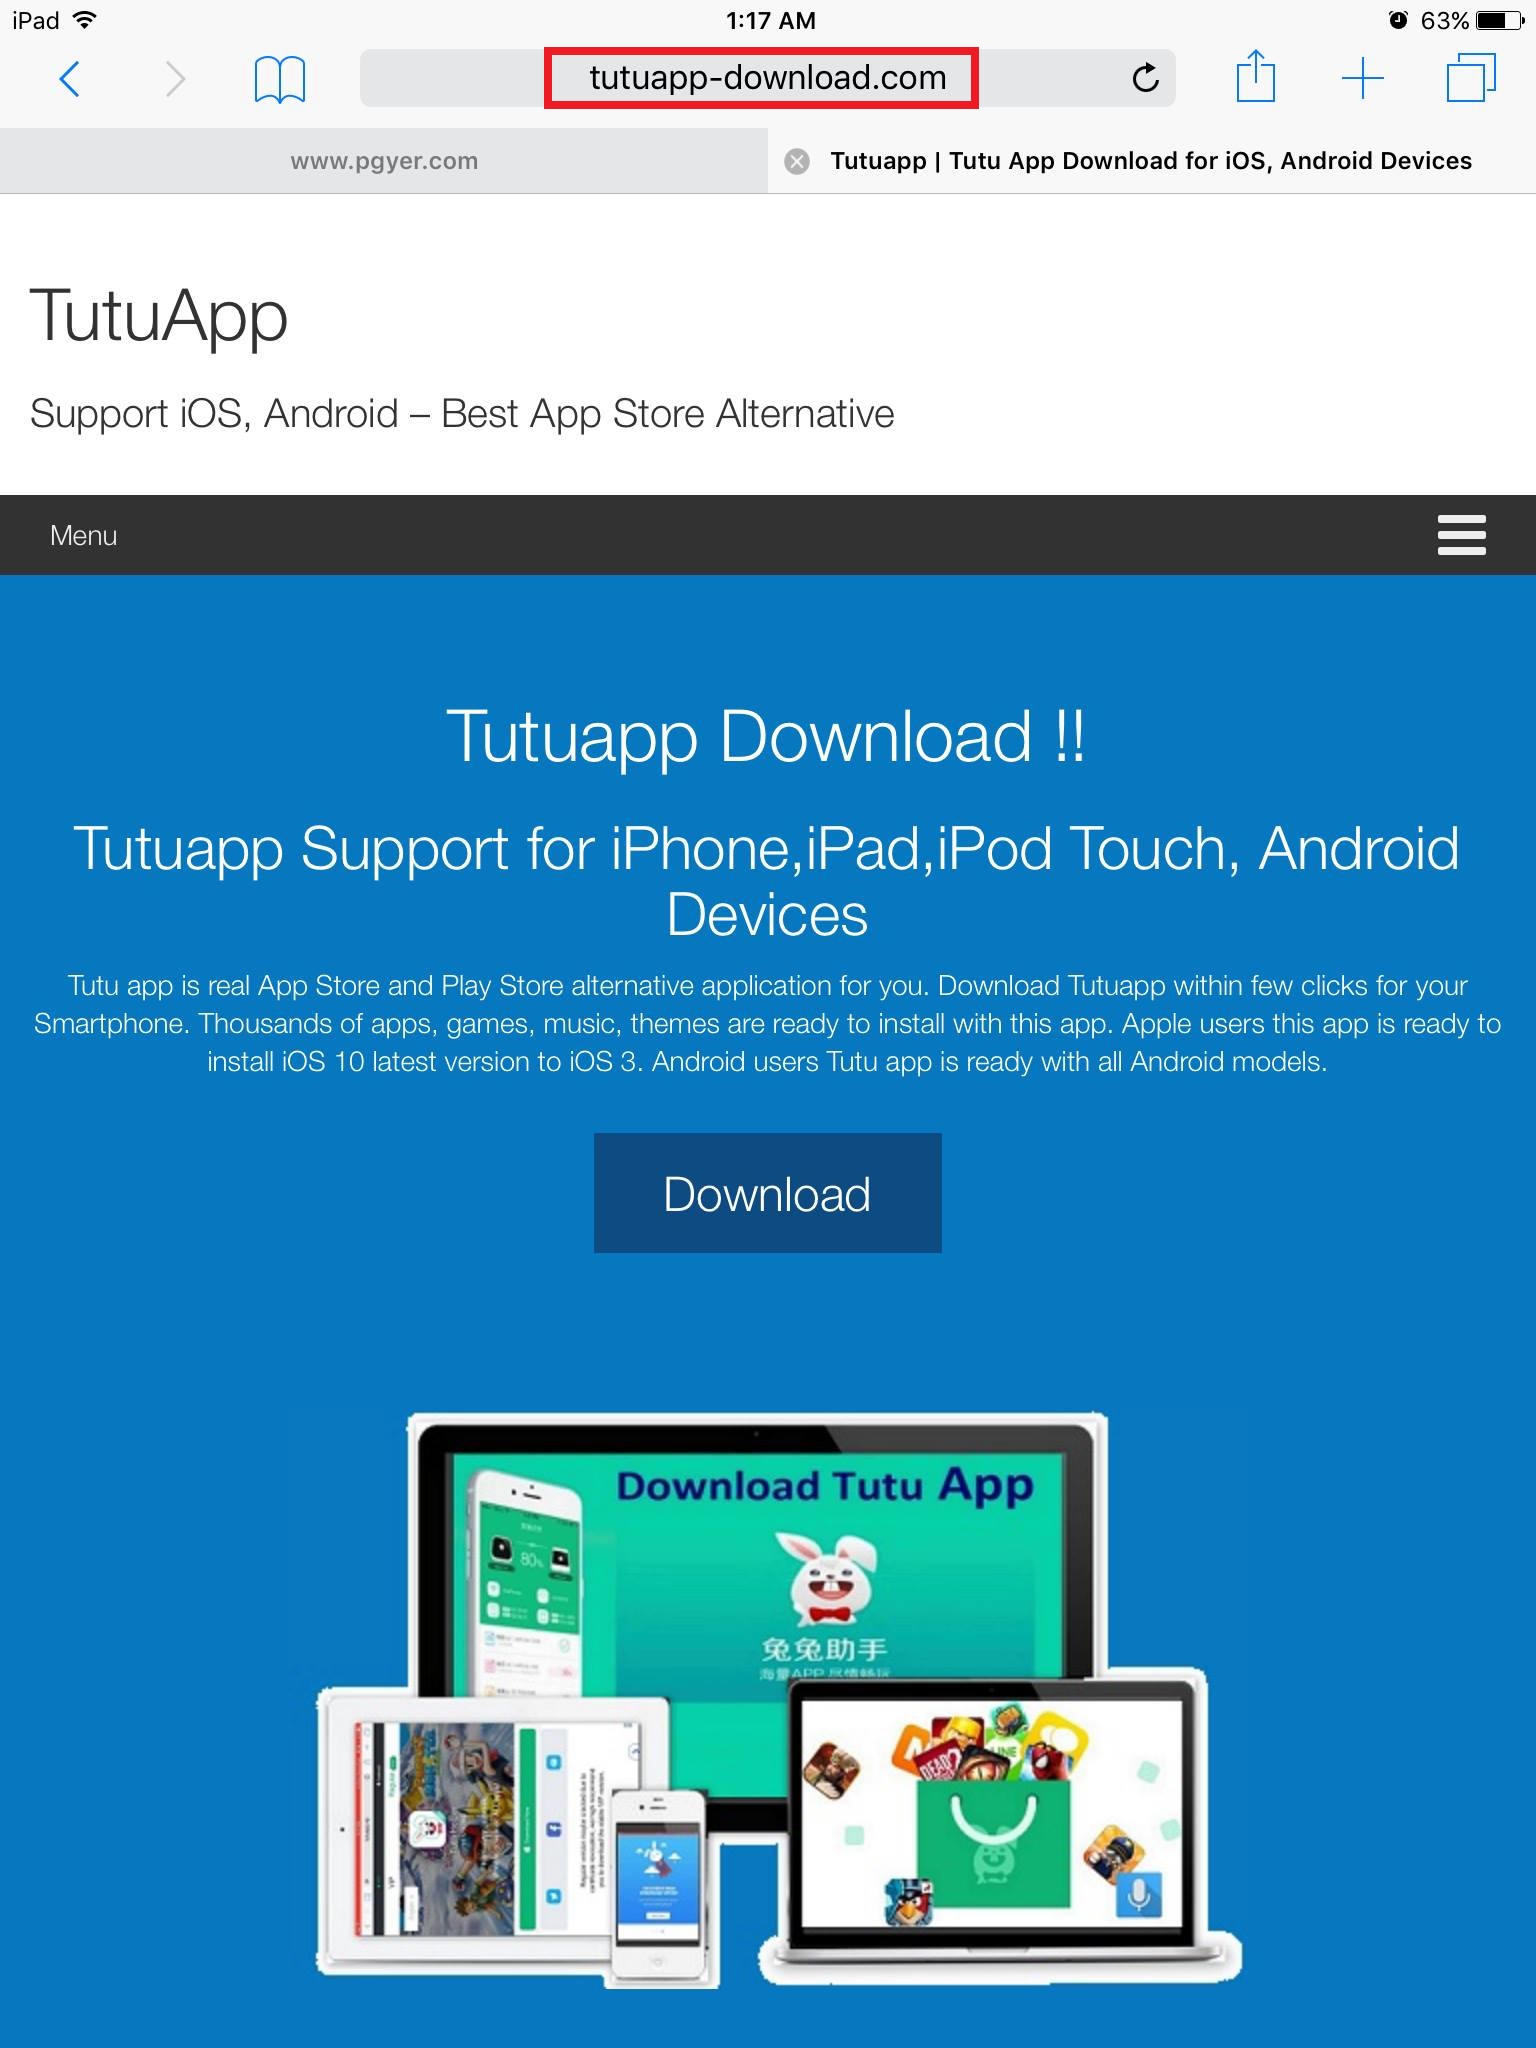 update tutuapp